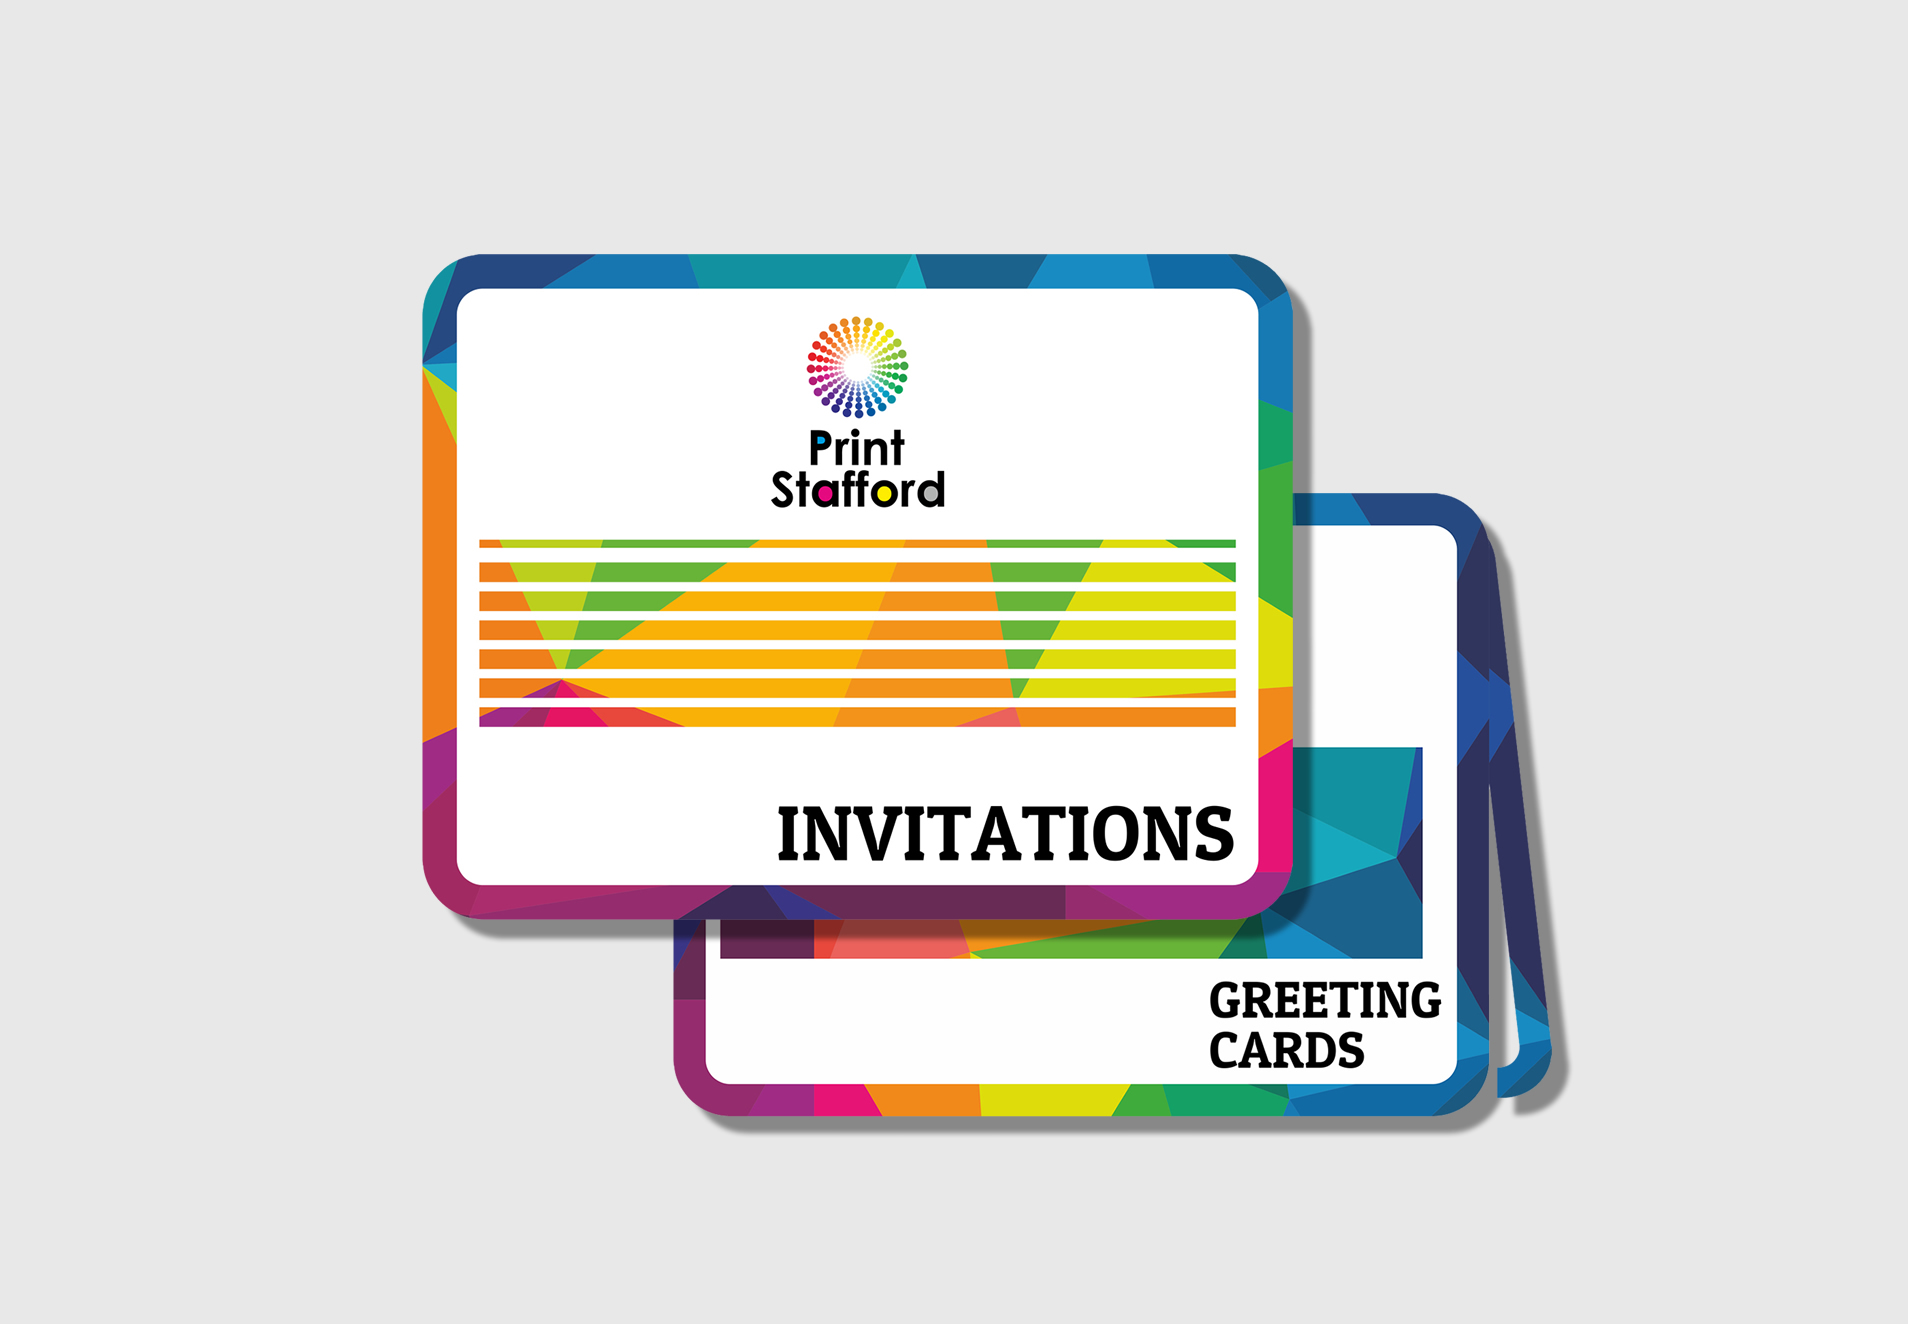 Invitations & Greetings Cards